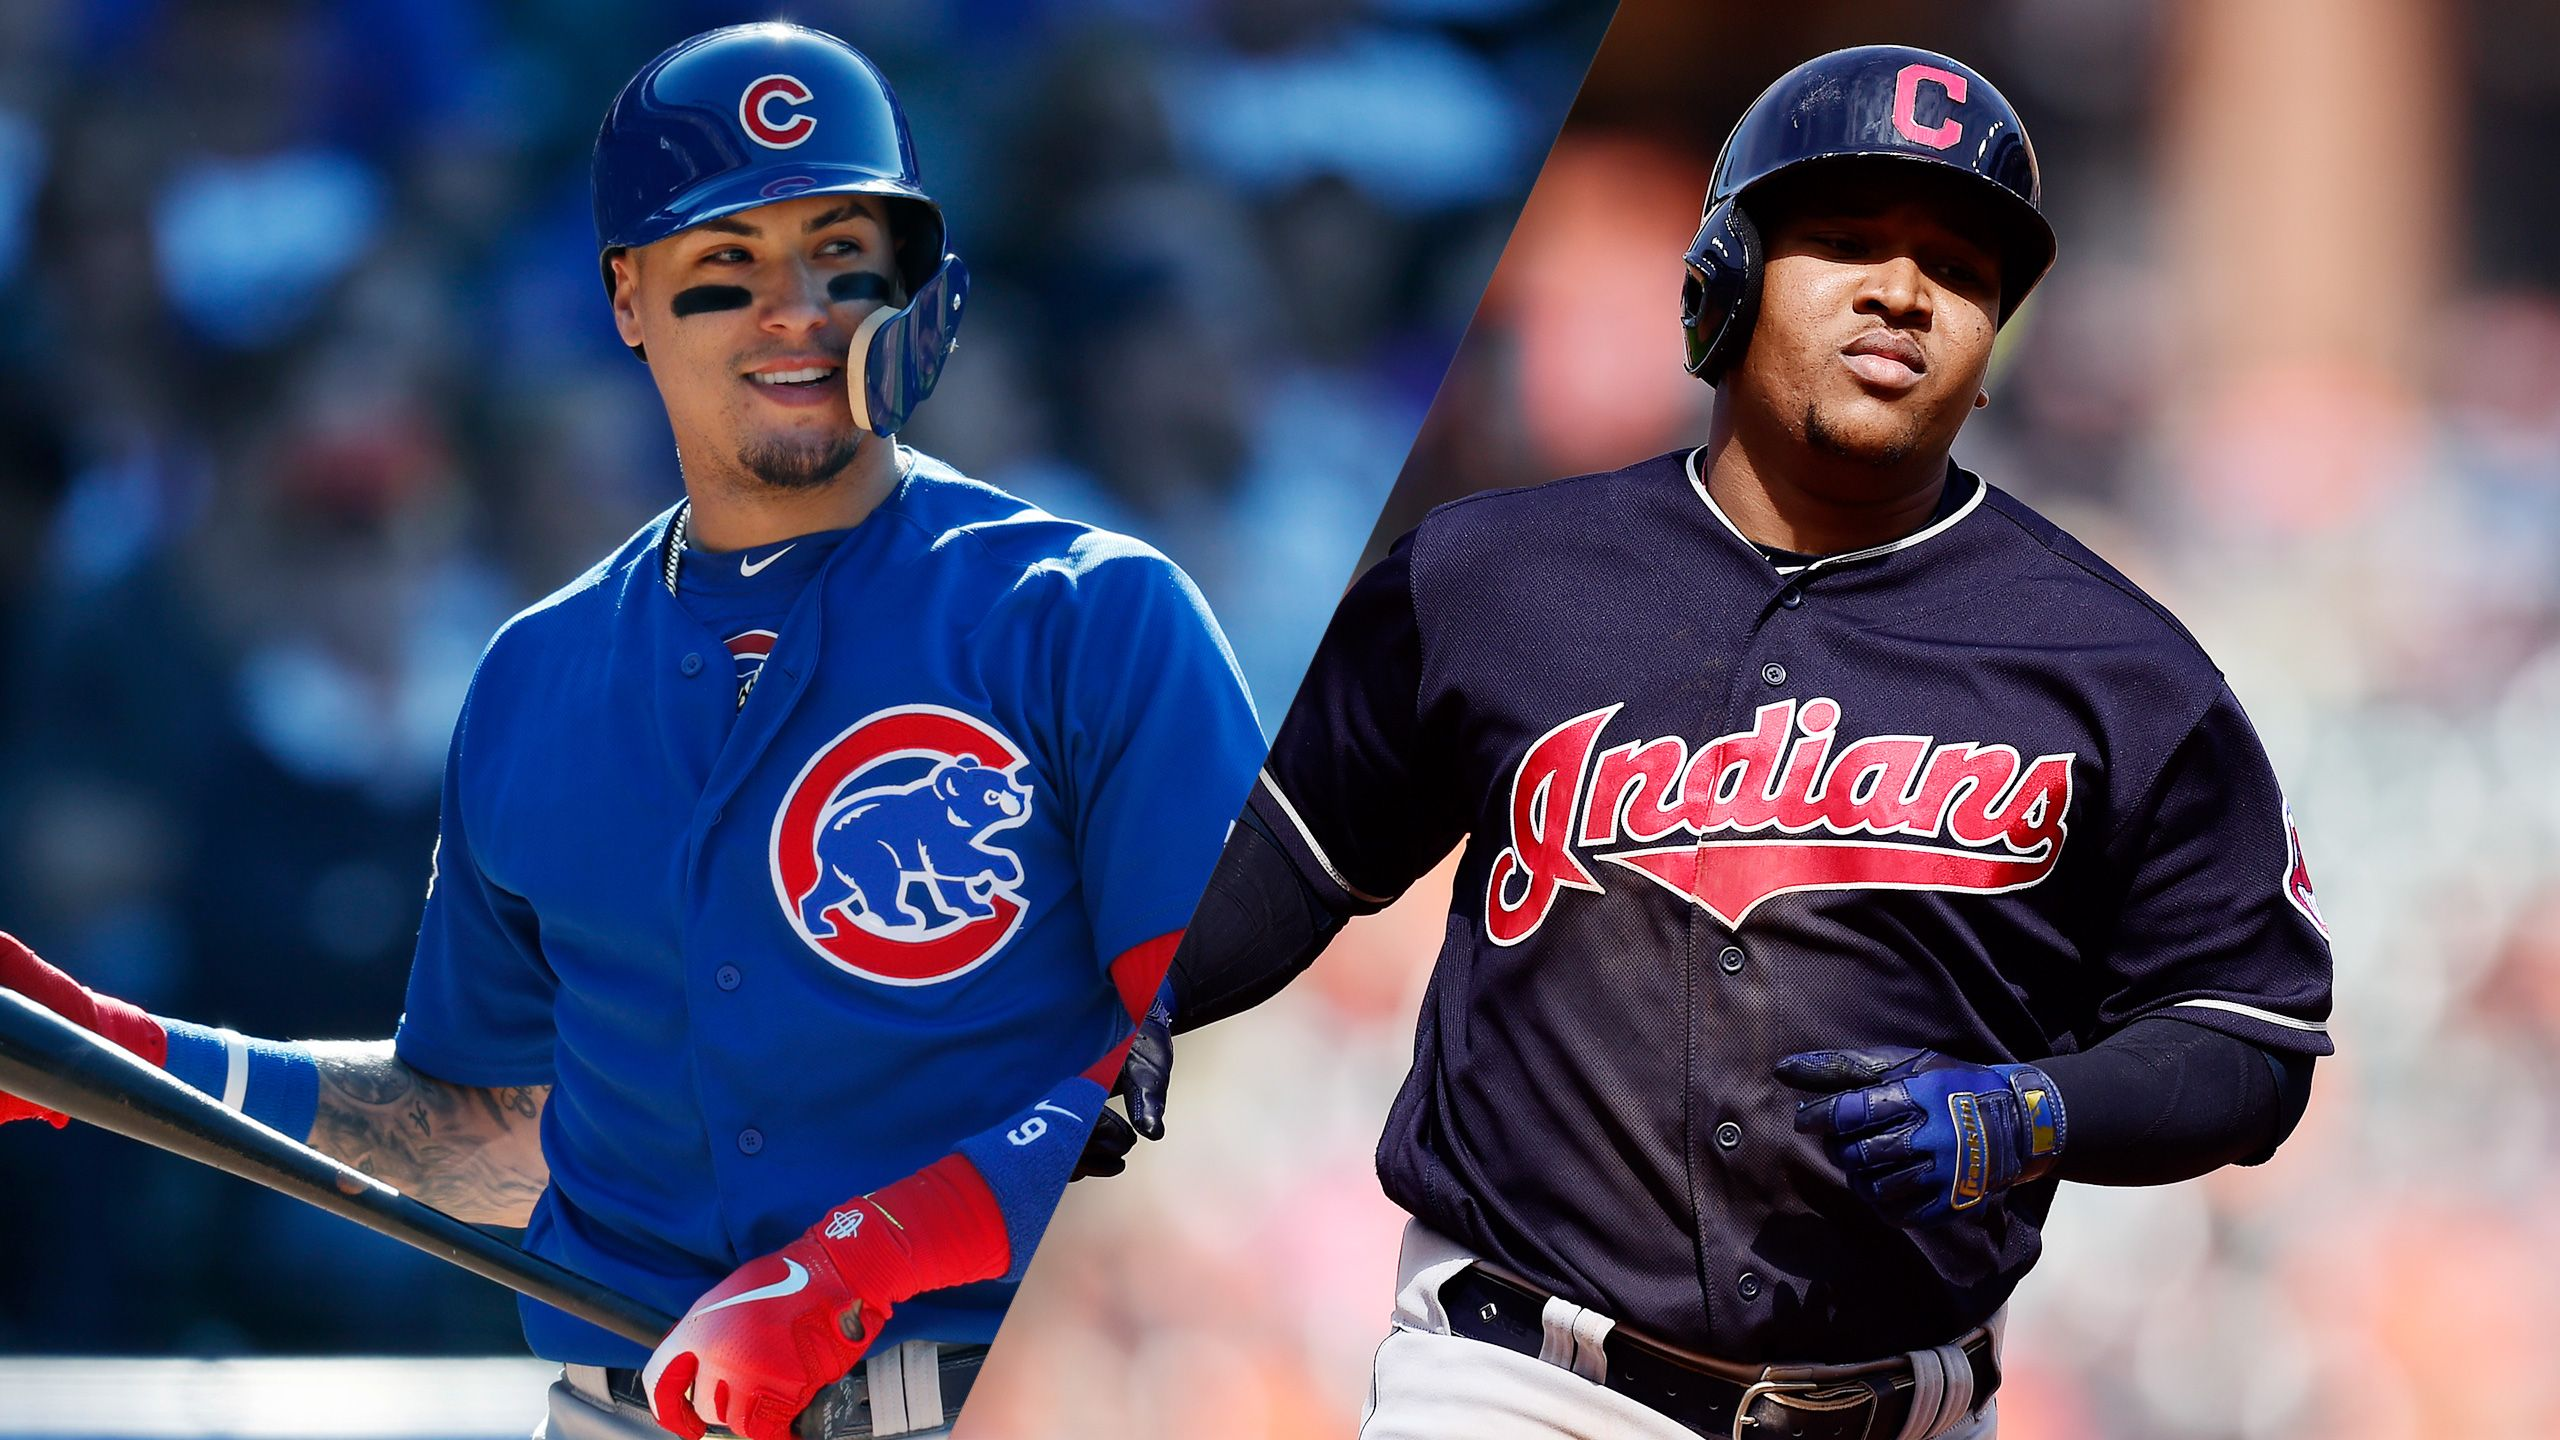 Chicago Cubs vs. Cleveland Indians (re-air)